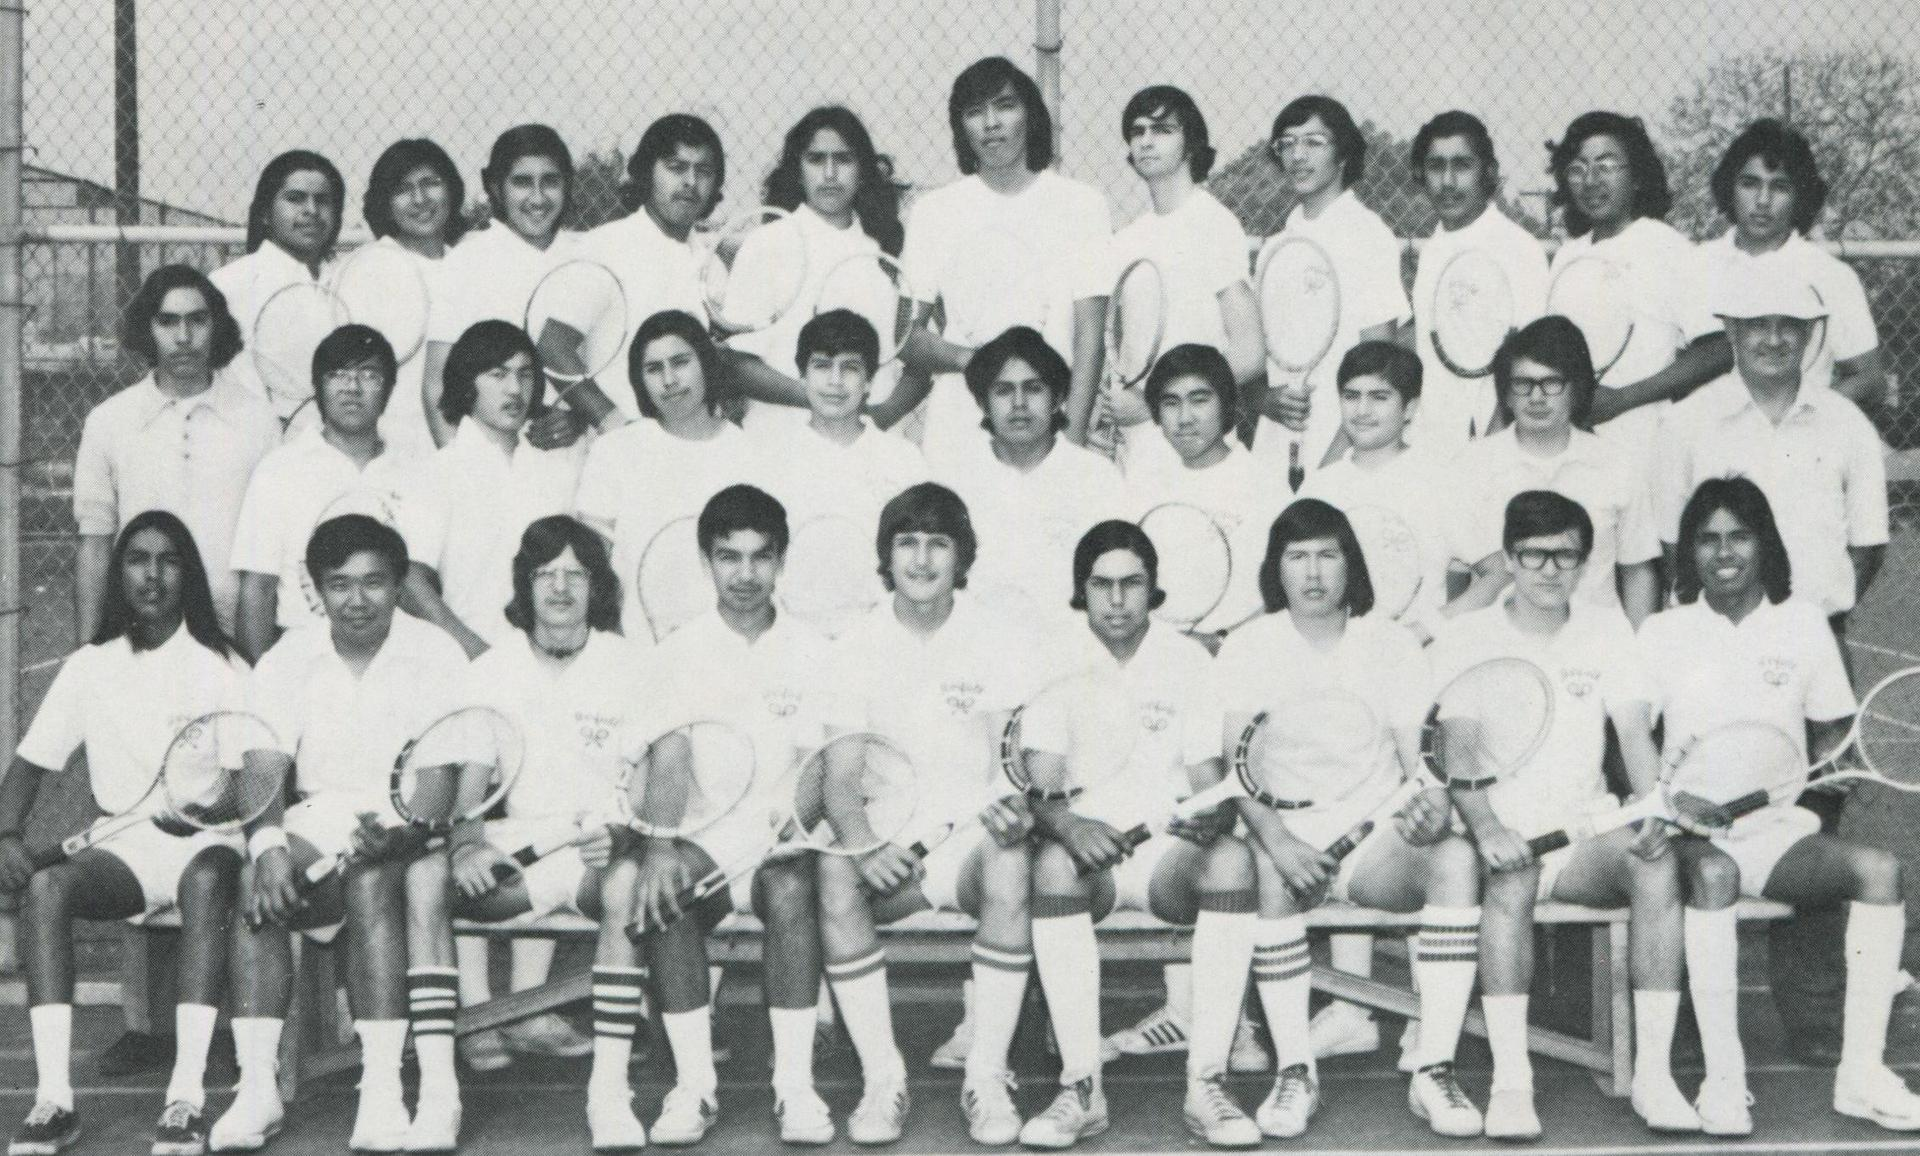 1974 Tennis Team with Coach Hastings